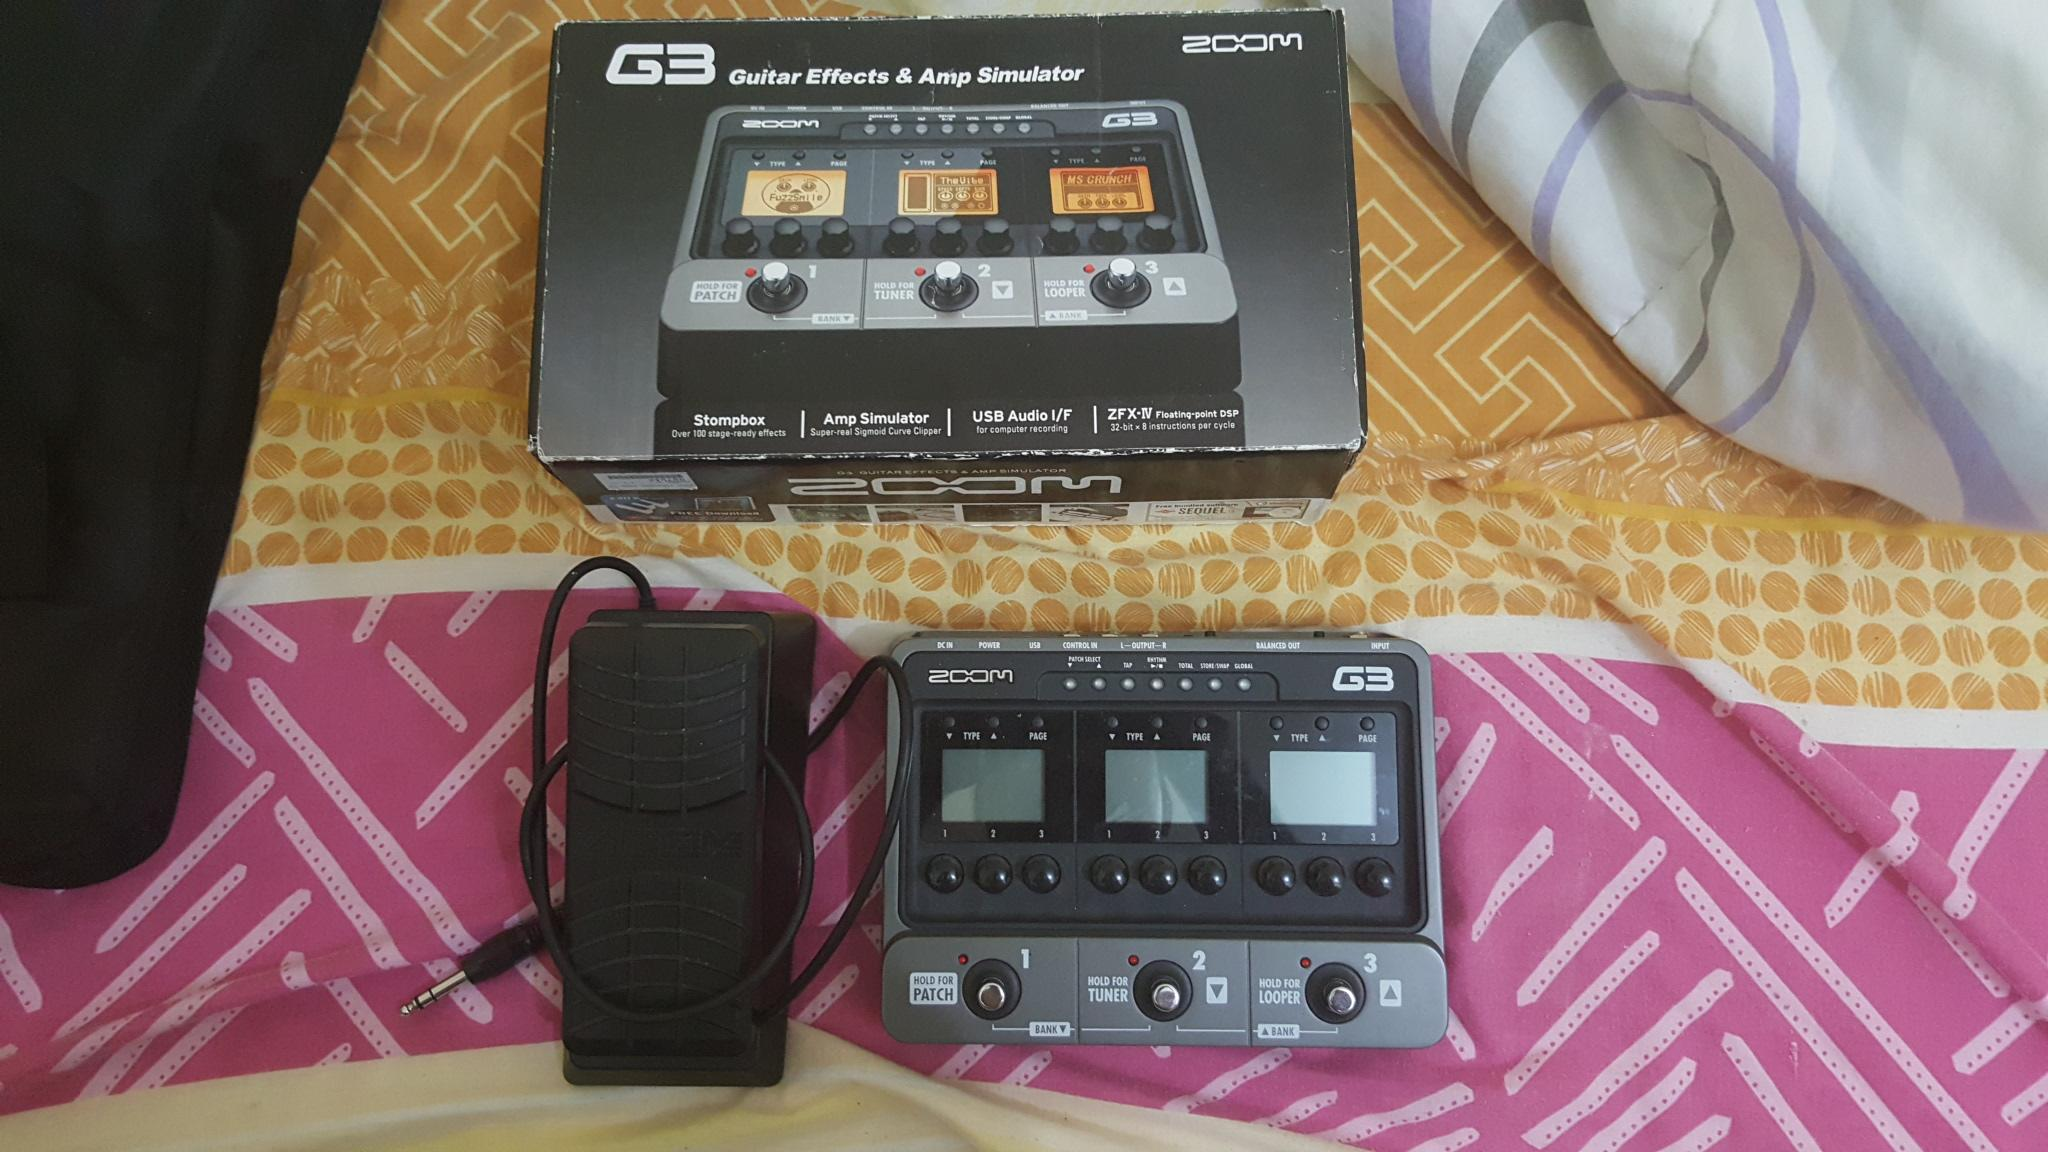 zoom g3 guitar multi effects and amp modelling  | Qatar Living